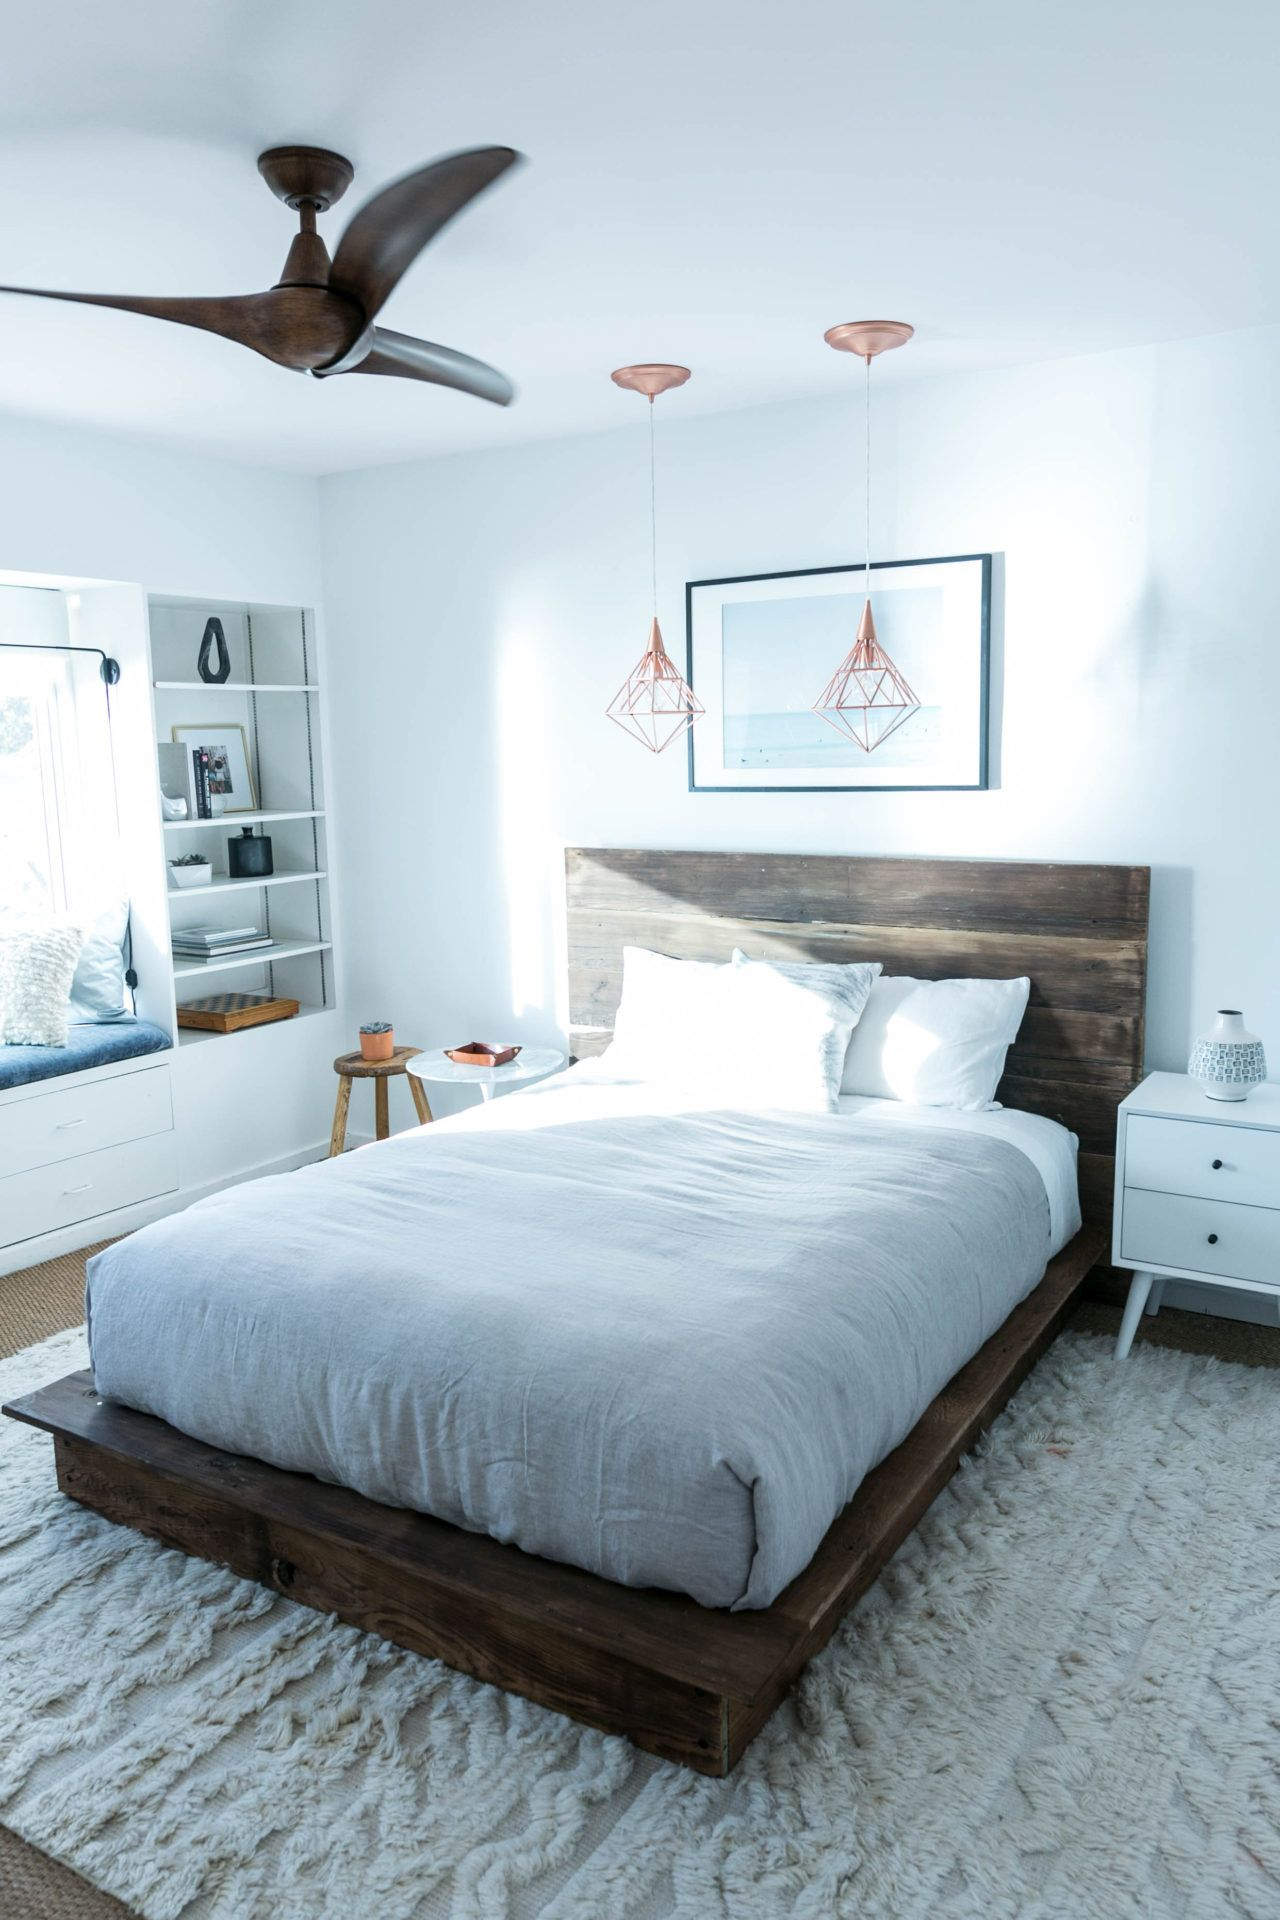 DIY Bed Frame Designs For Bedrooms With Character - interior4you